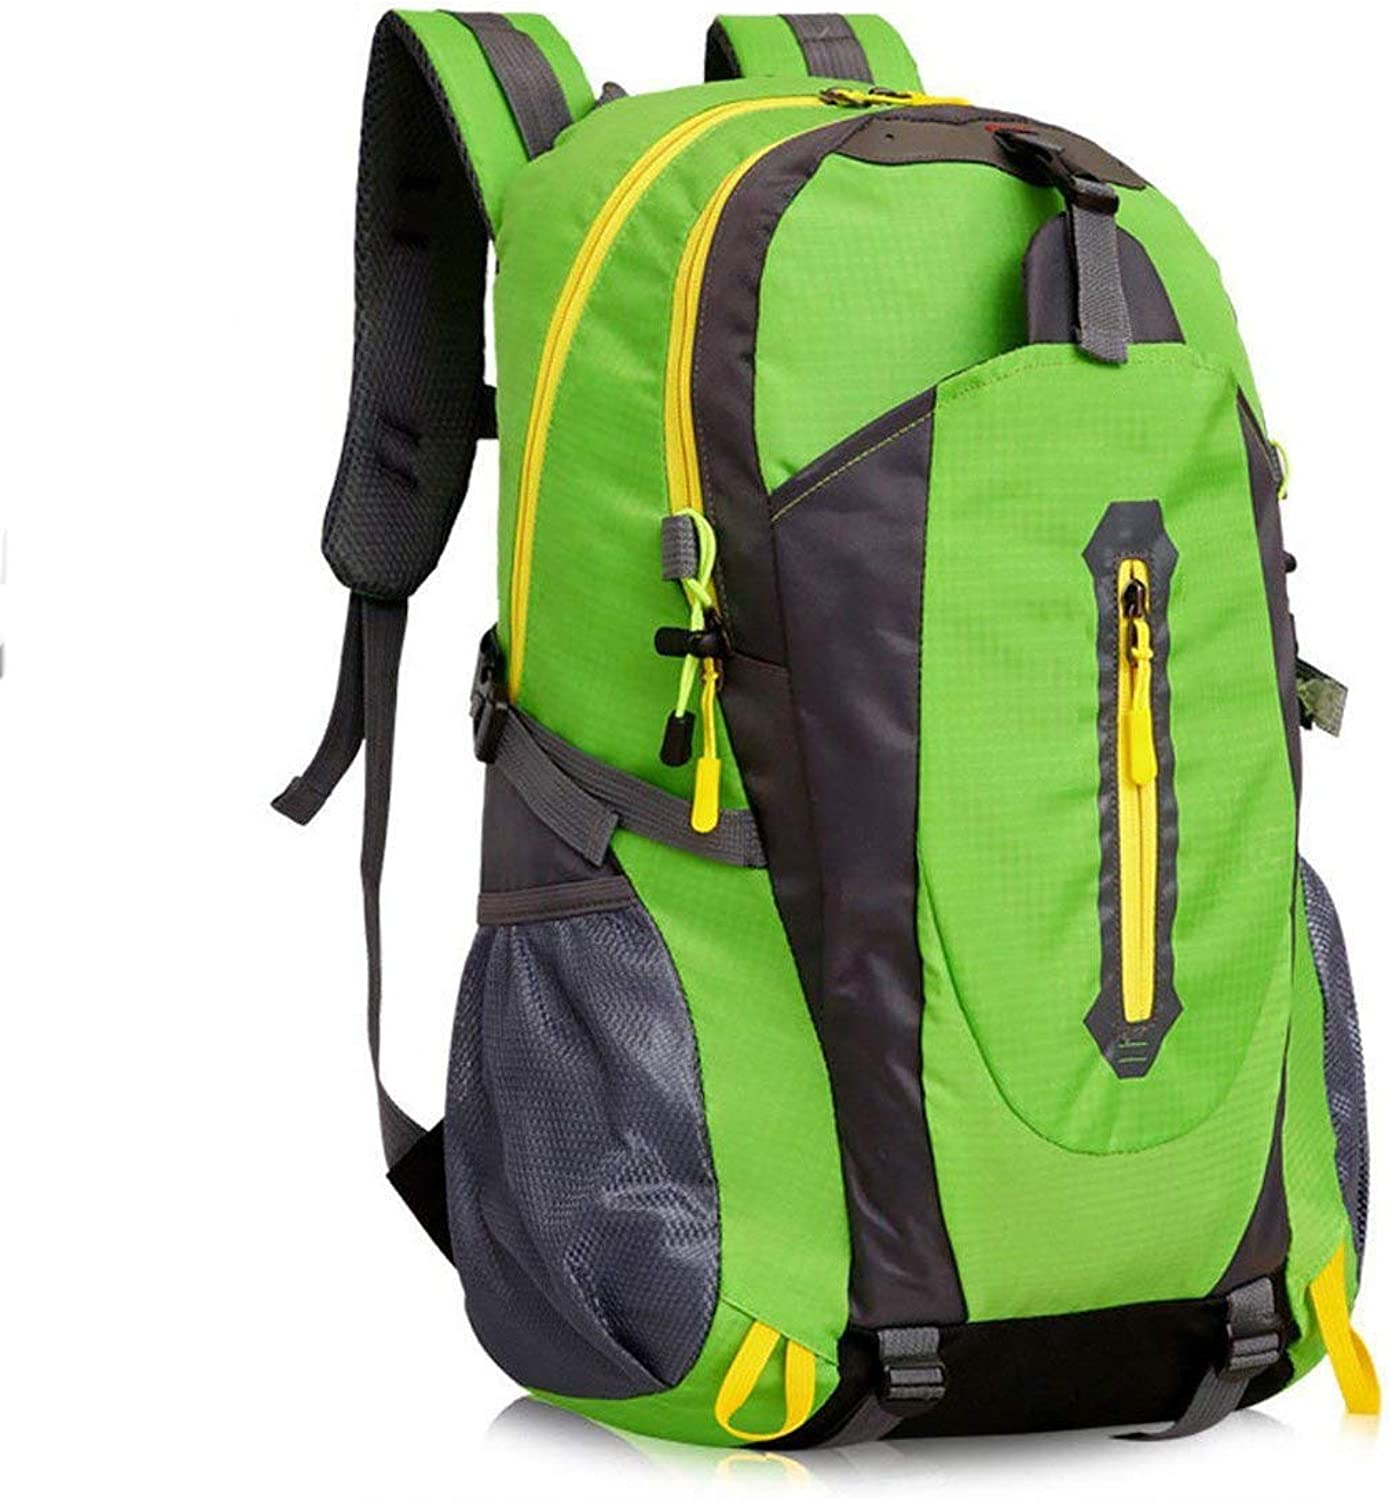 XHHWZB 40L Lightweight Hiking Backpack, MultiFunctional Waterproof Casual Camping Daypack for Outdoor Sport Climbing Mountaineer 51 X 31 X 19 cm